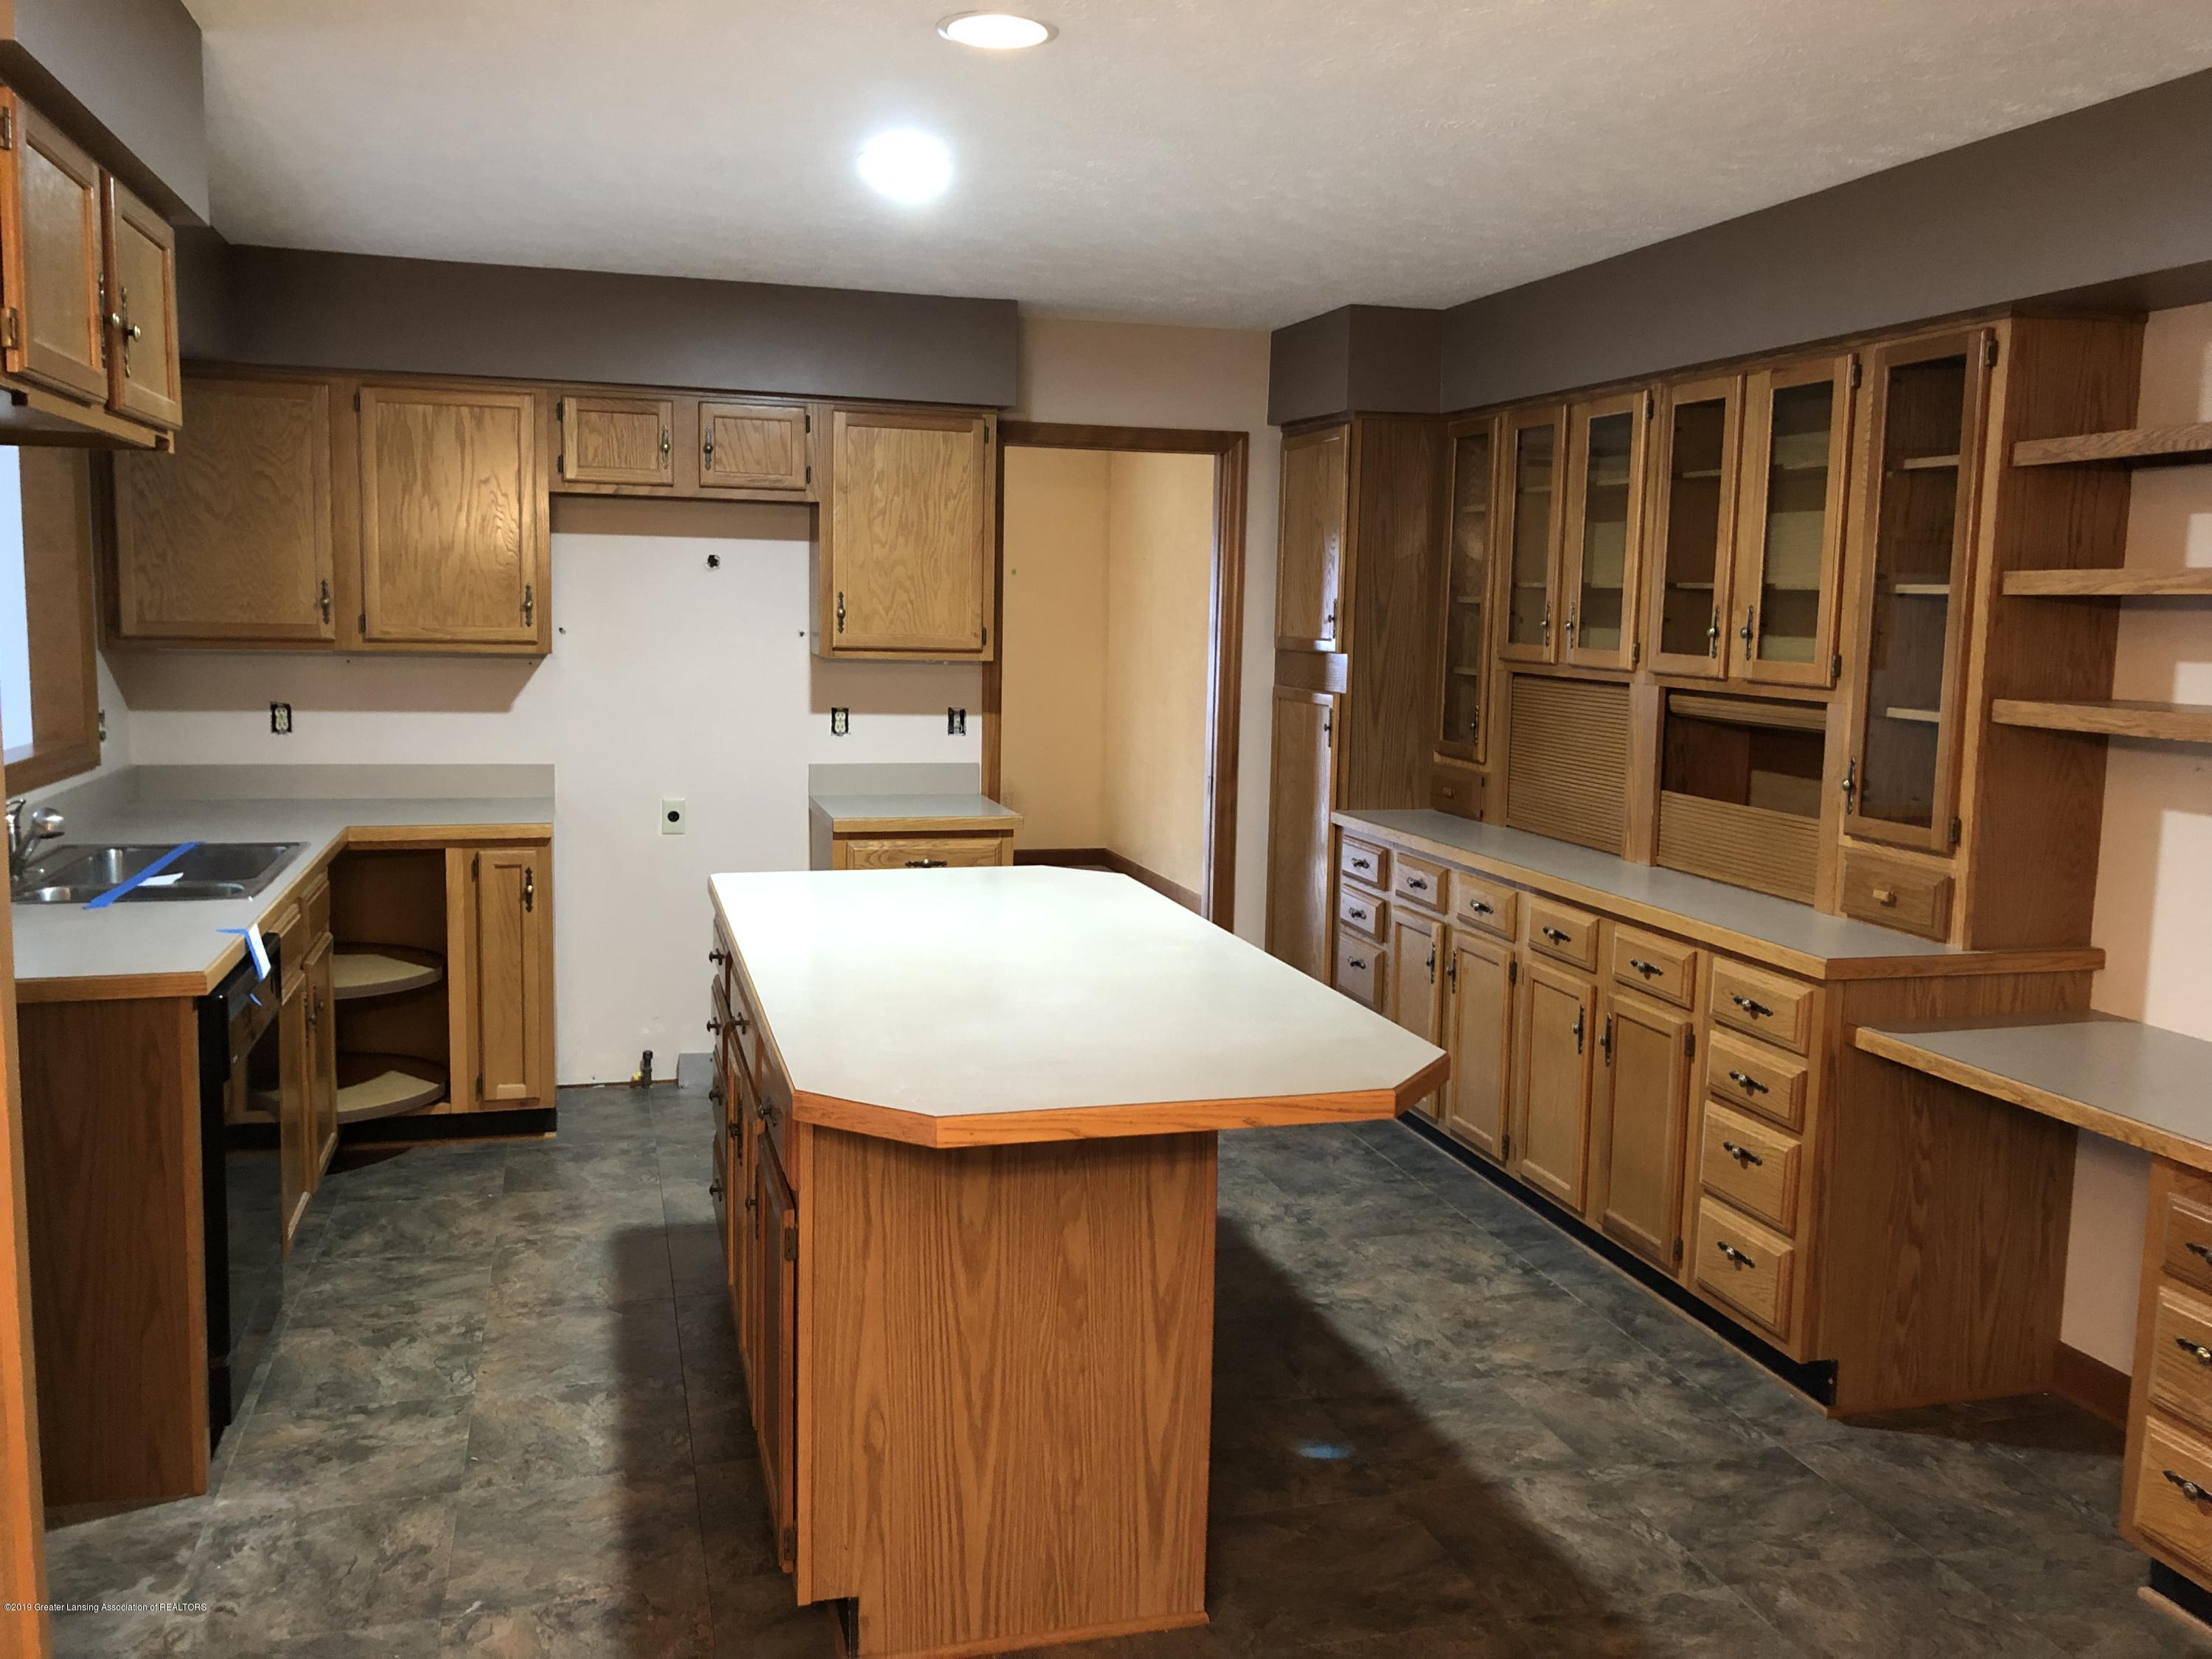 2816 Forest River Dr - A8637485-DB65-4712-8C3A-8BA4EB071724 - 4